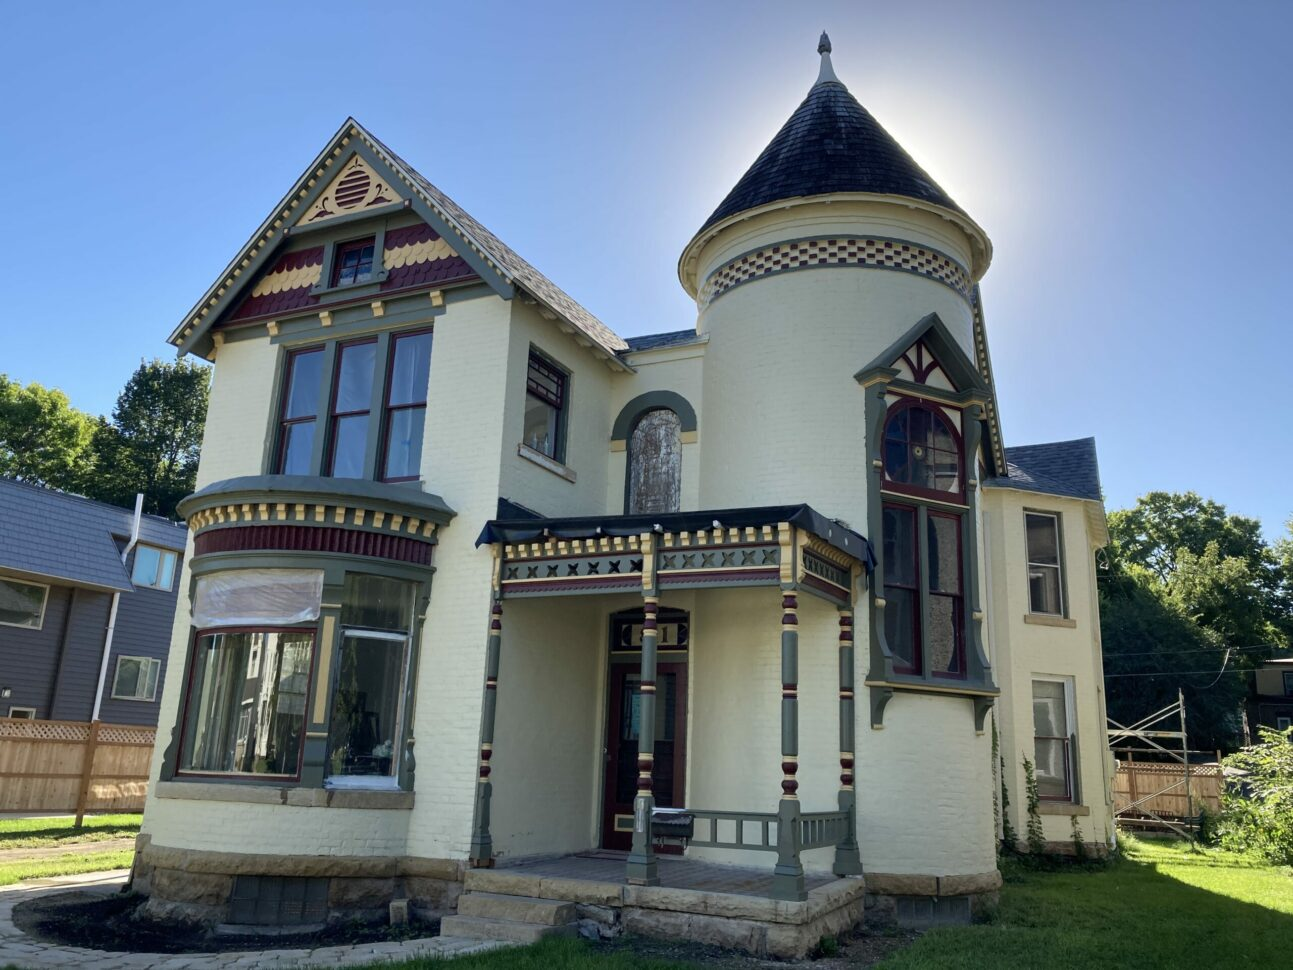 Moulin Rouge Bed & Breakfast House, 811 South Second Street, Mankato